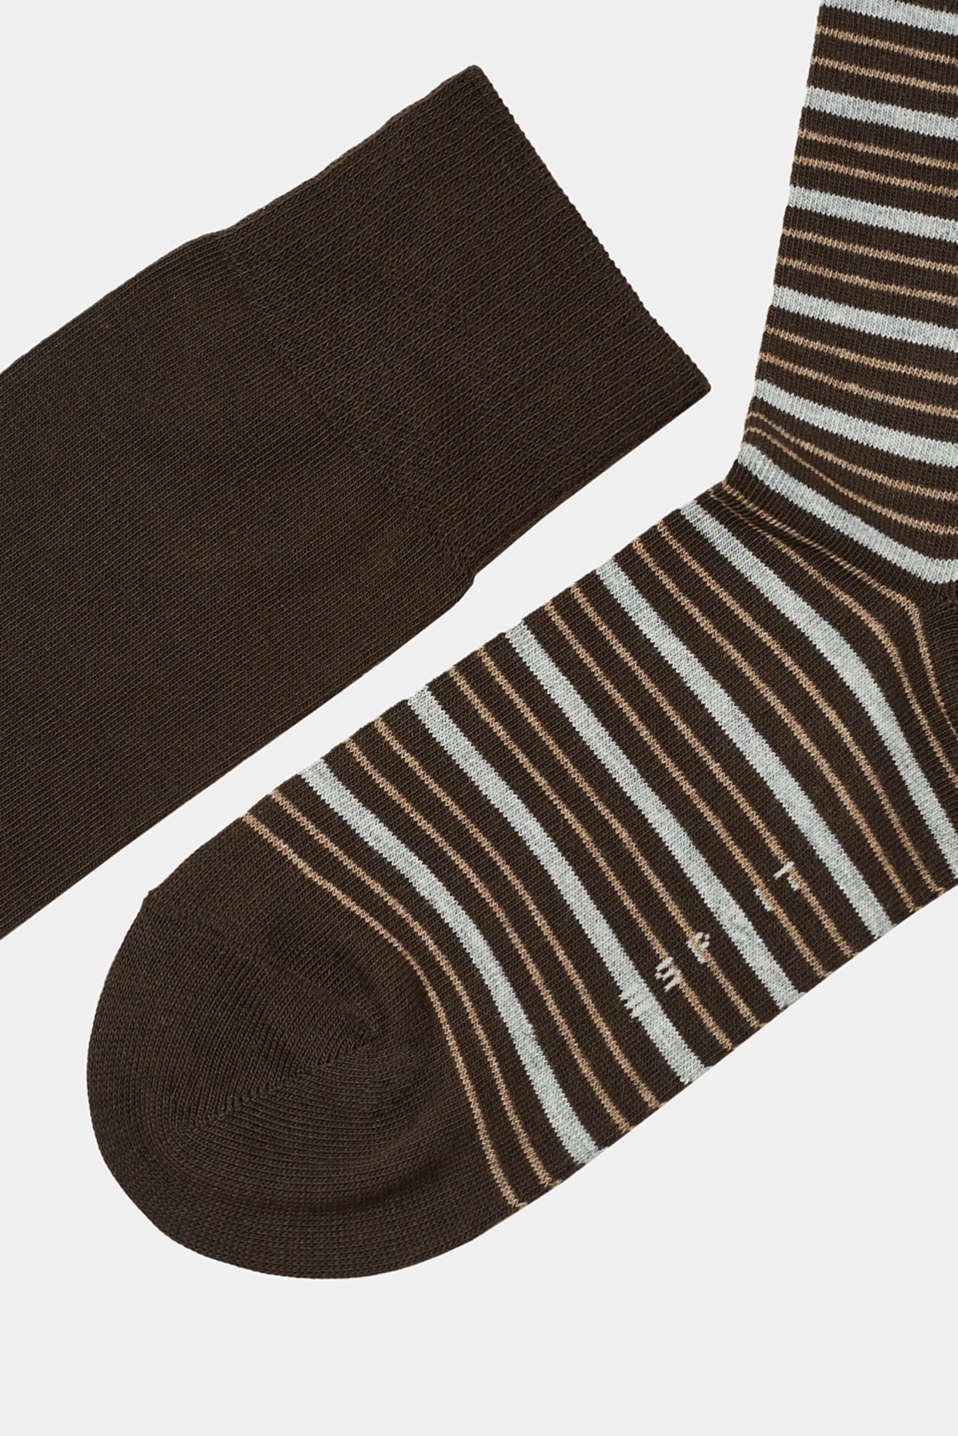 Double pack of socks – plain colour + stripe